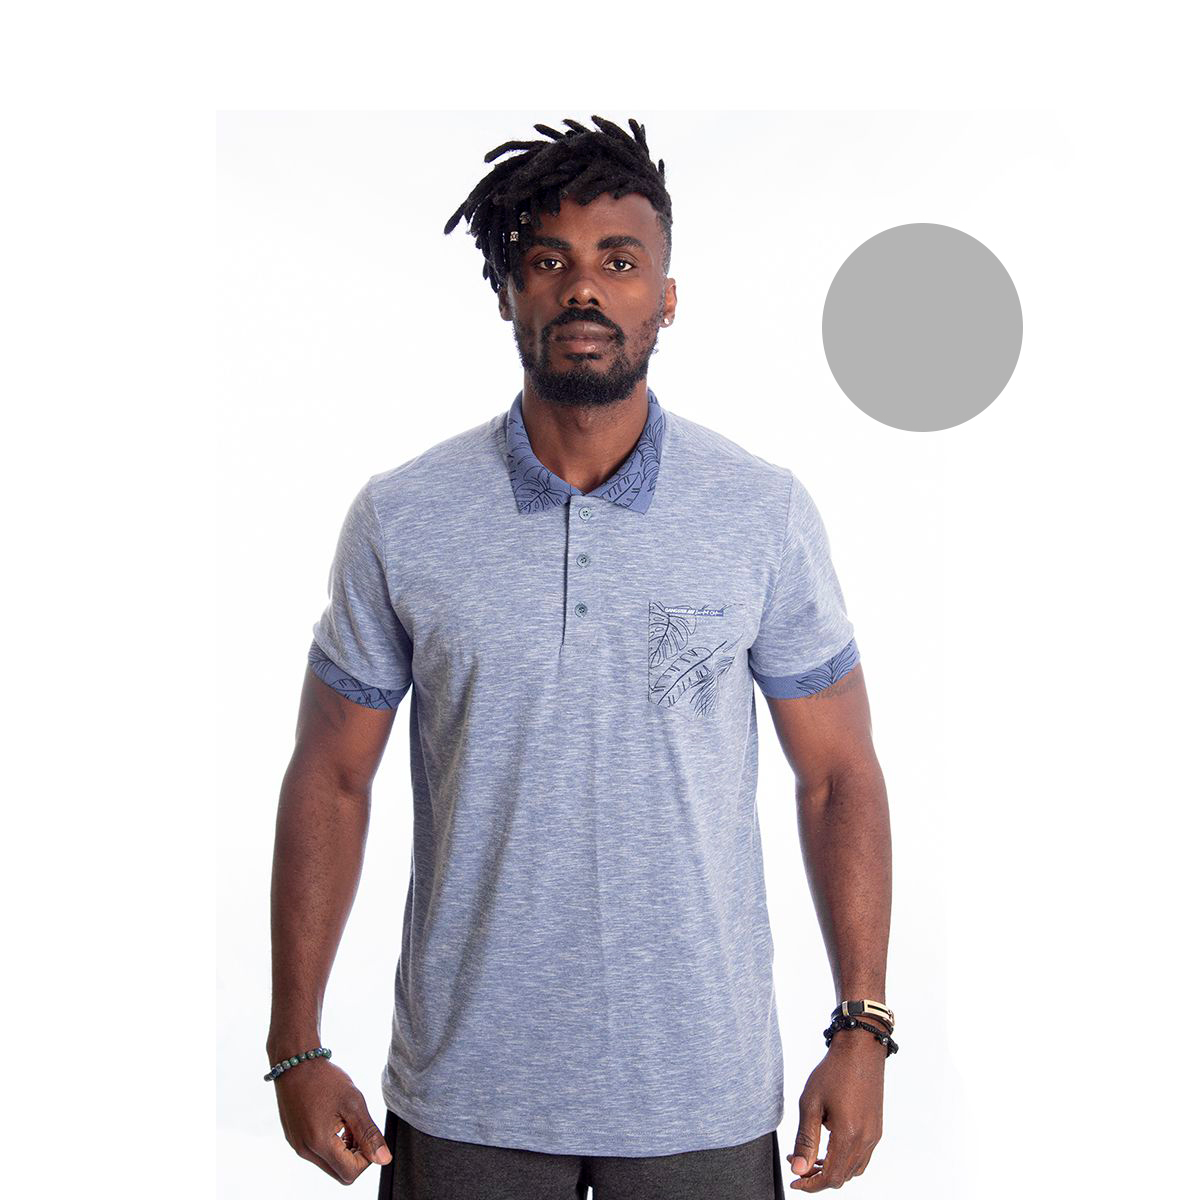 Camisa Polo Masculina Gangster Clássica 29.08.0306